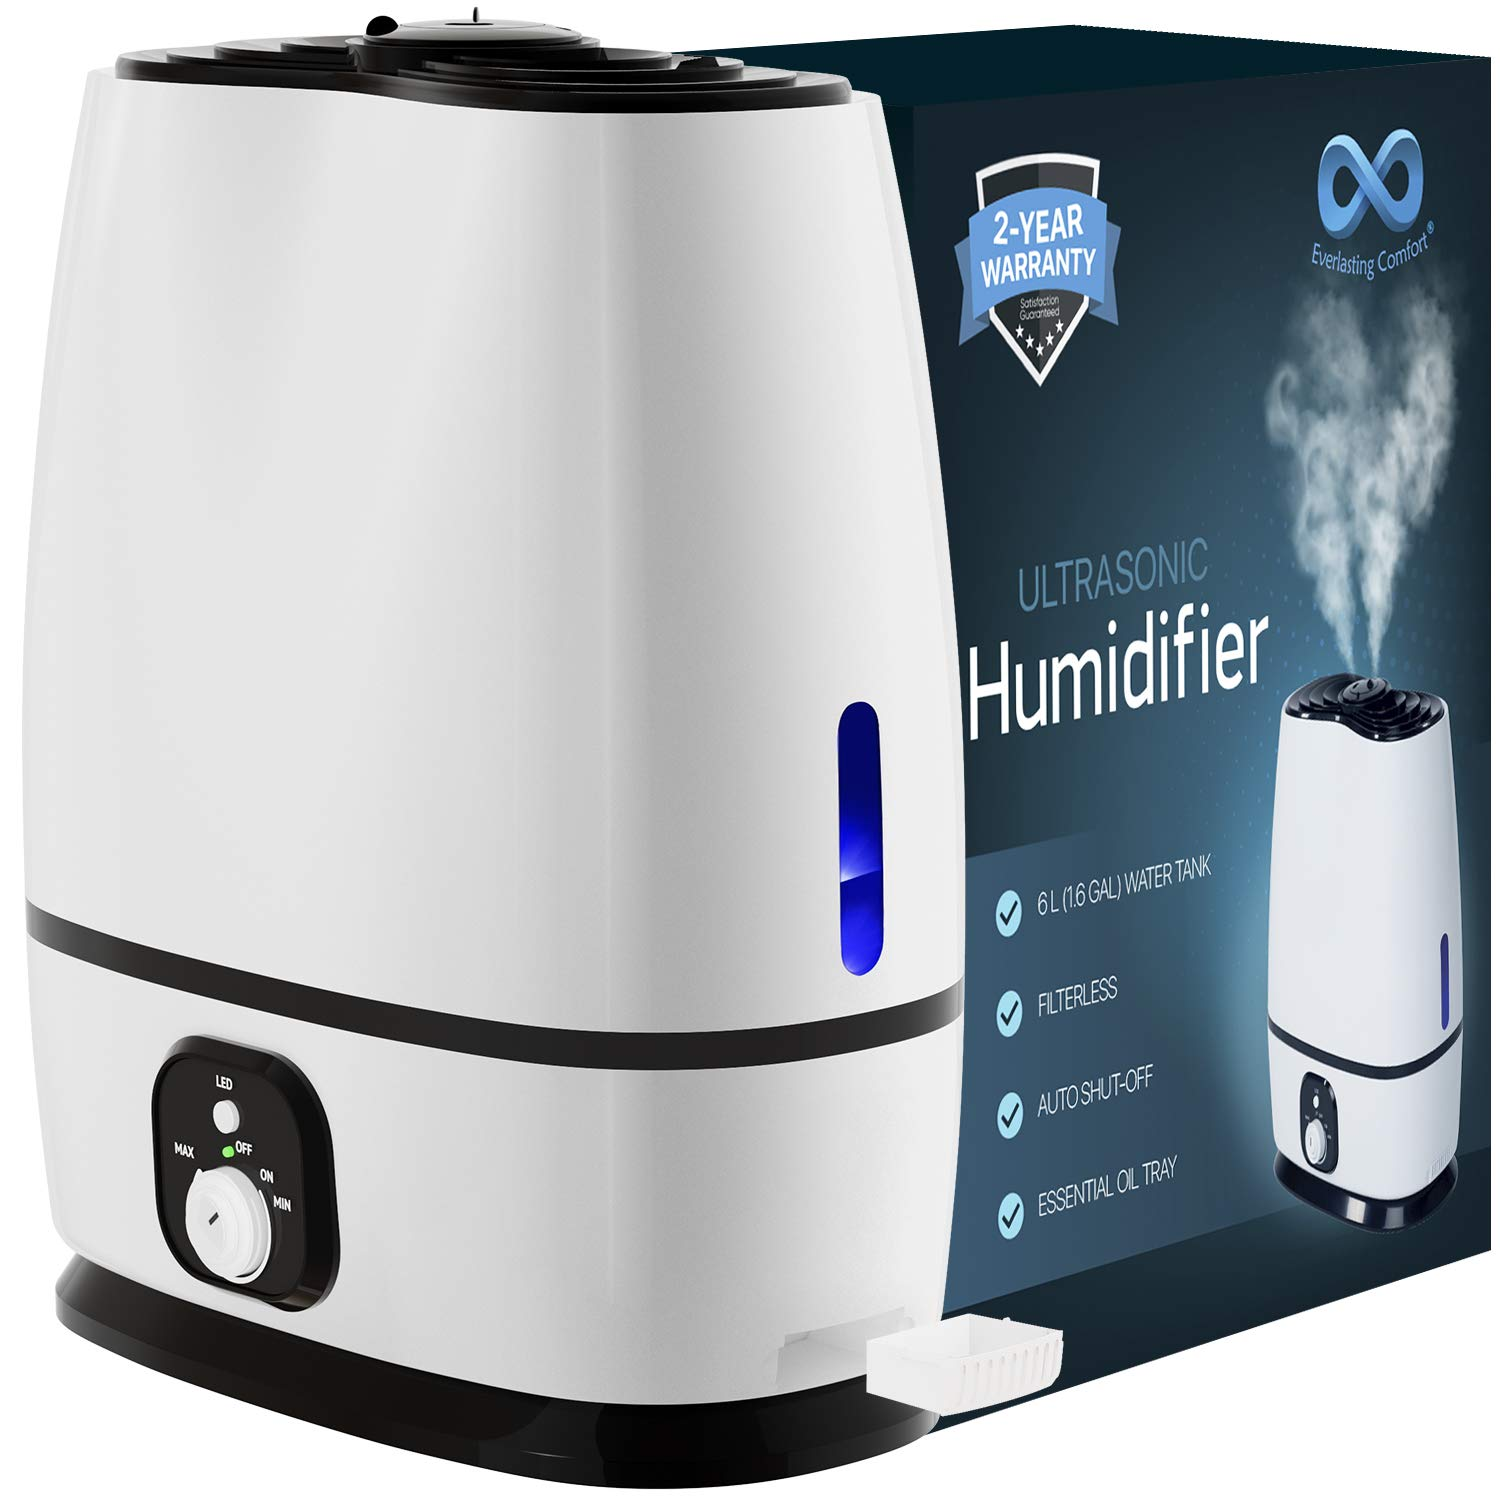 7 Best Humidifier for Nosebleeds – Reviews and Buyer's Guide 2020 2